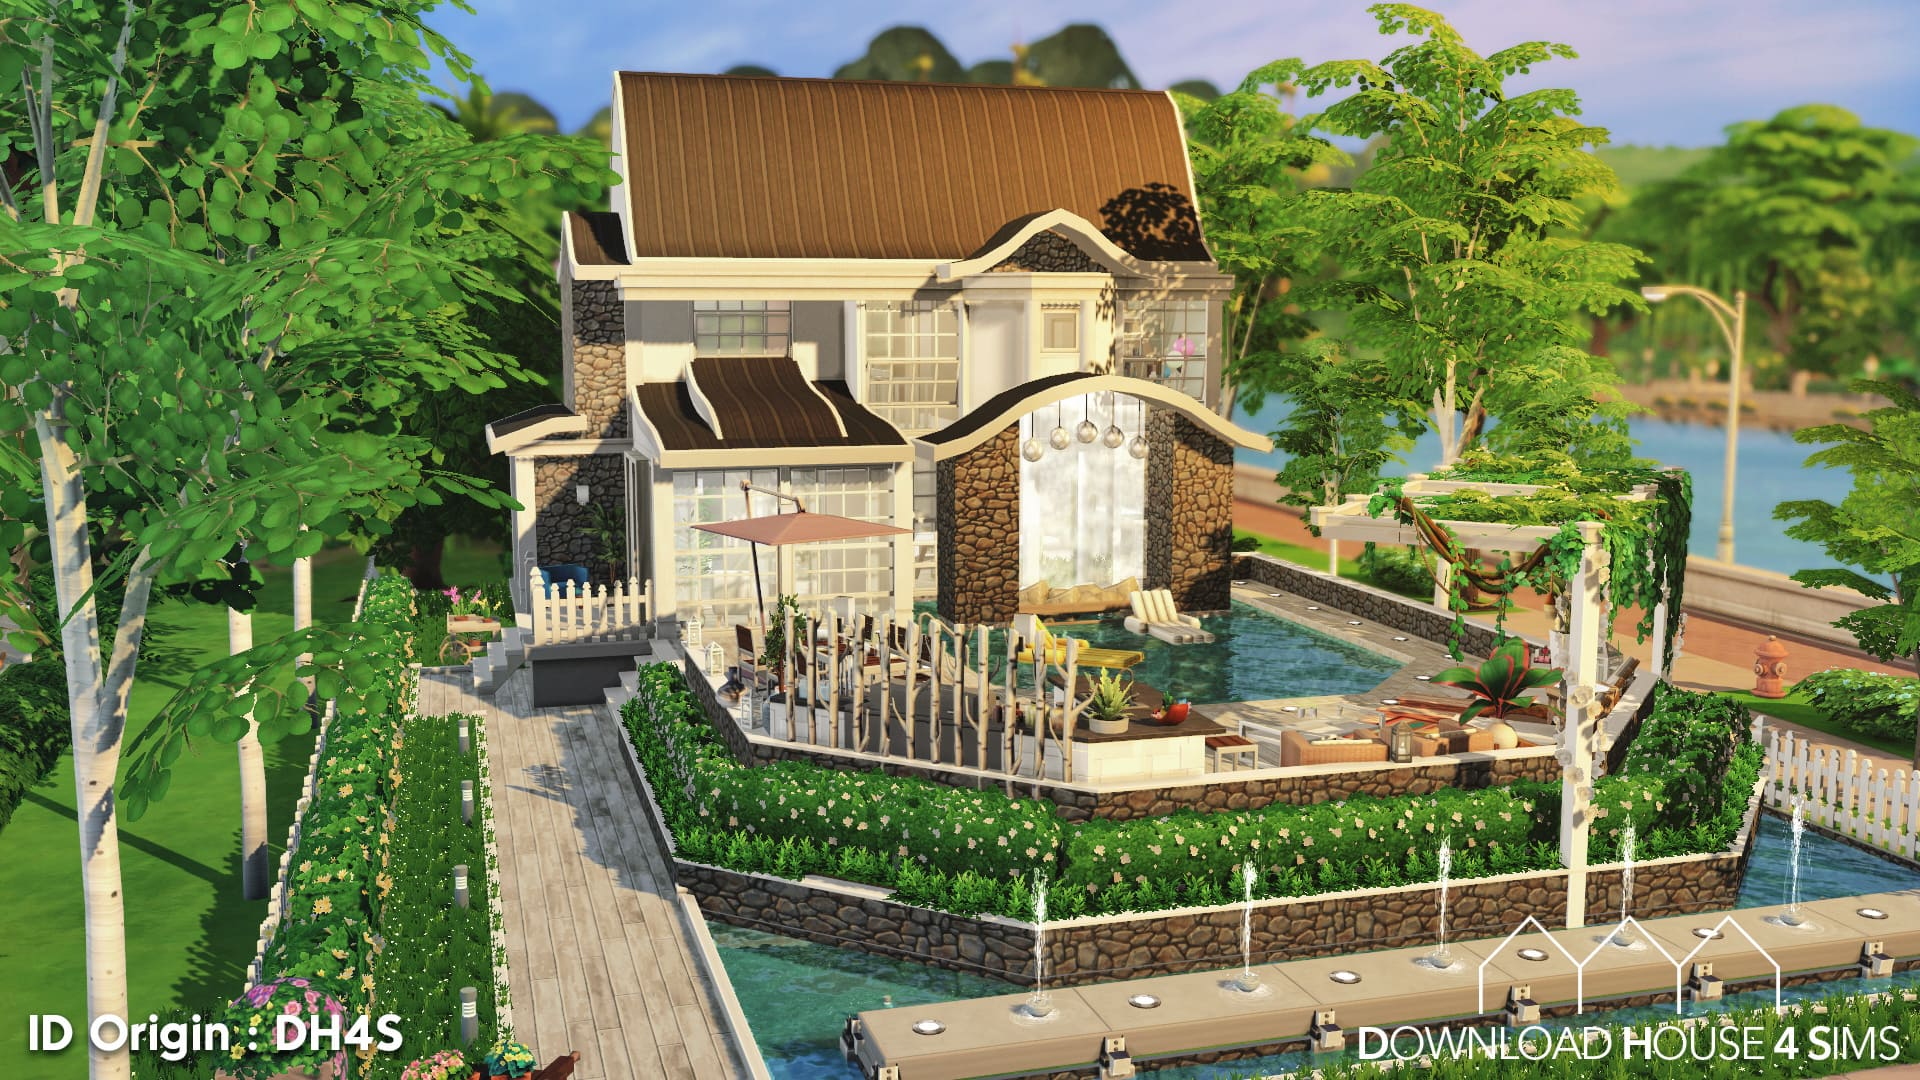 Family-Cottage-Sims-4-DH4S-download-house-4-sims-29